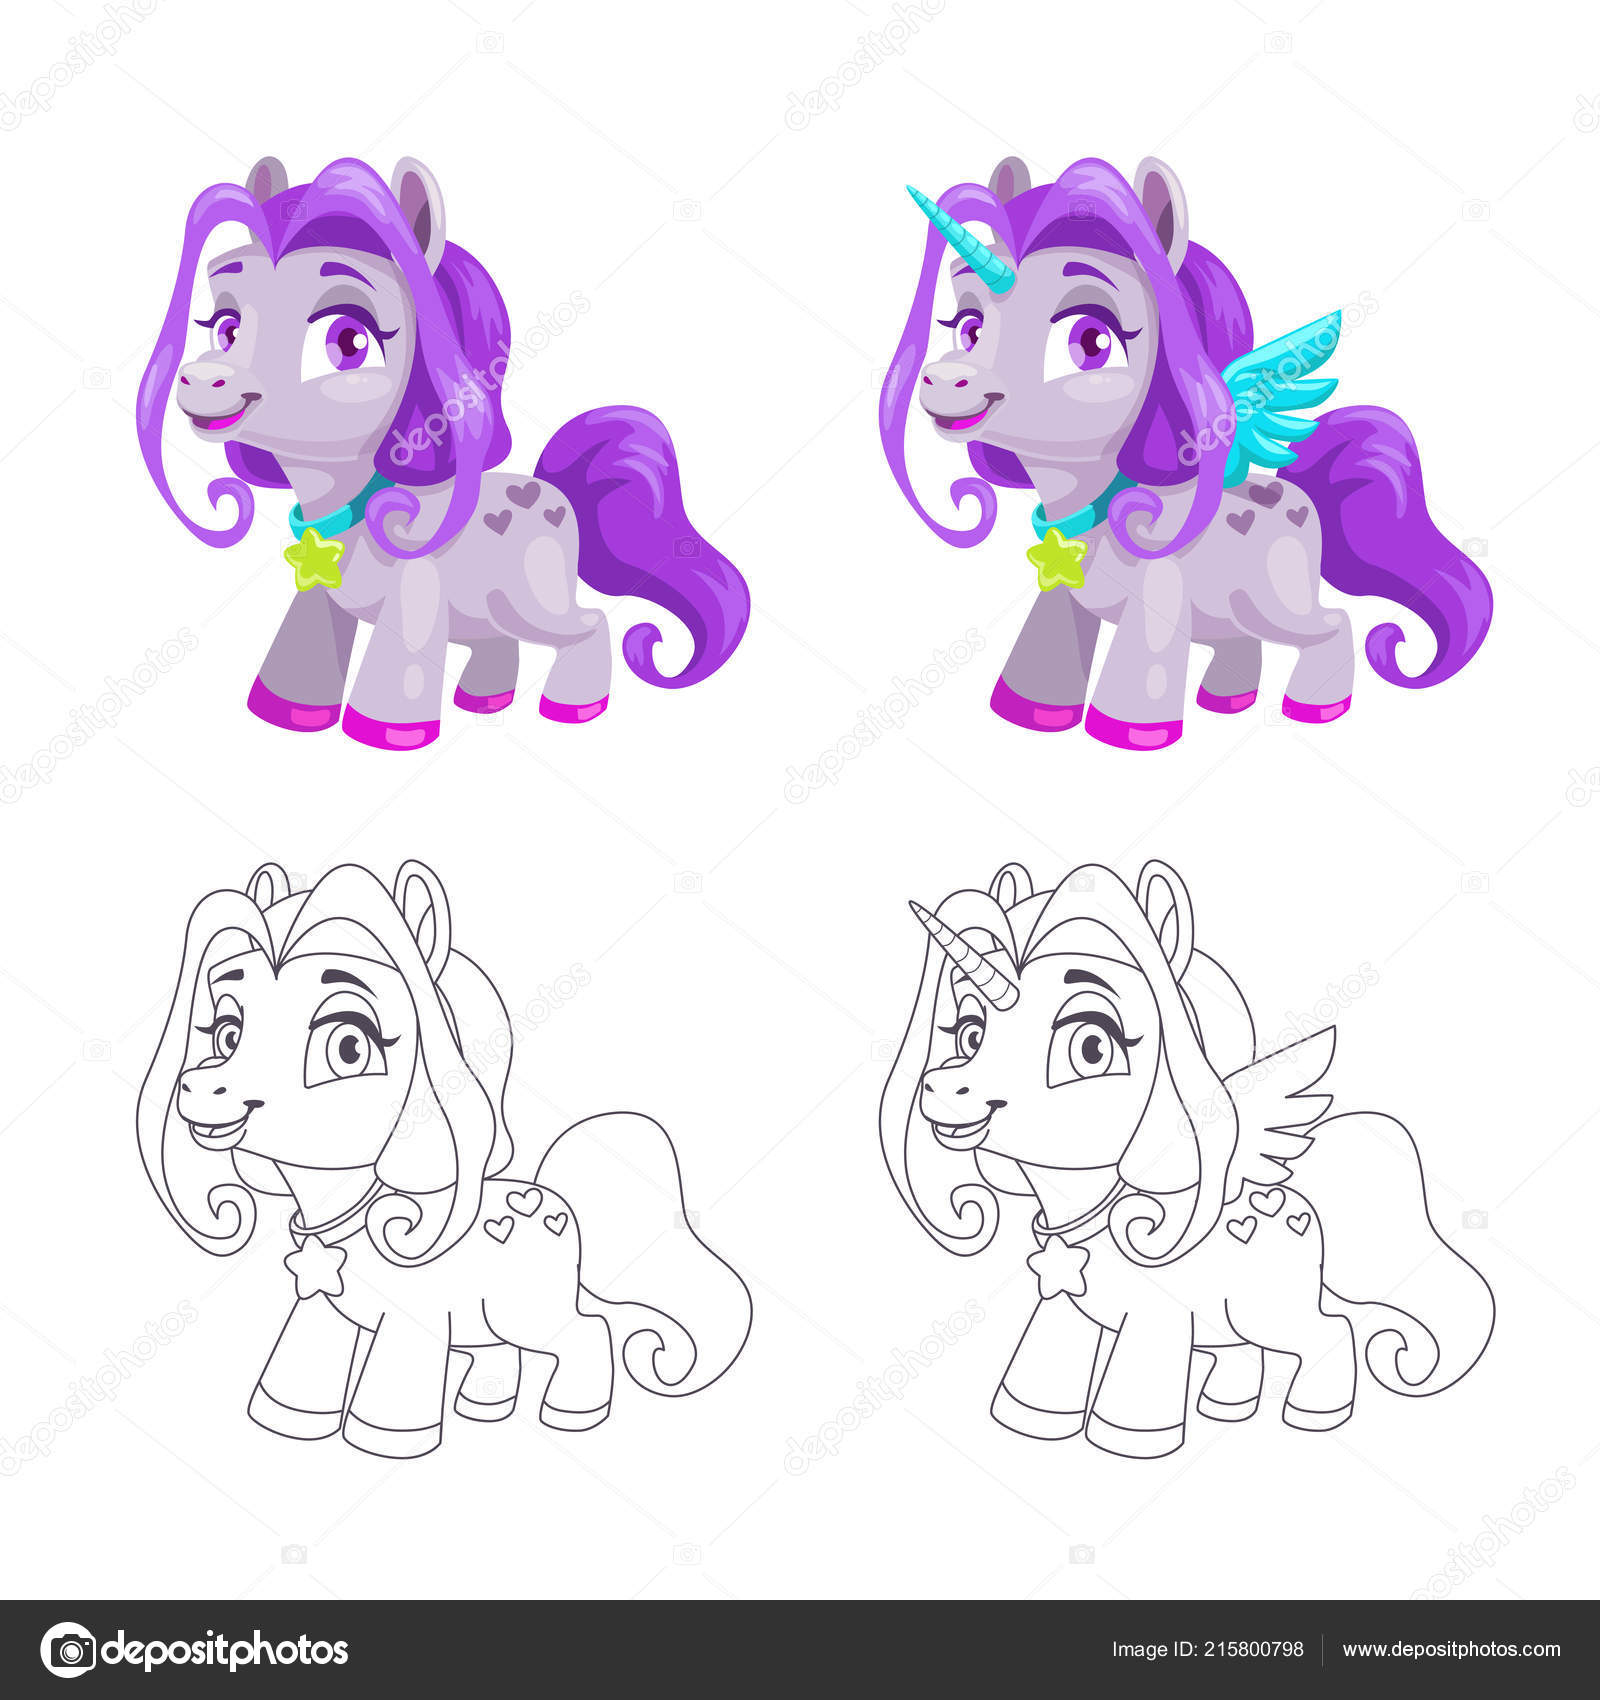 Cute Little Horse And Unicorn Icons Colorful And Outline Versions Stock Vector C Lilu330 215800798